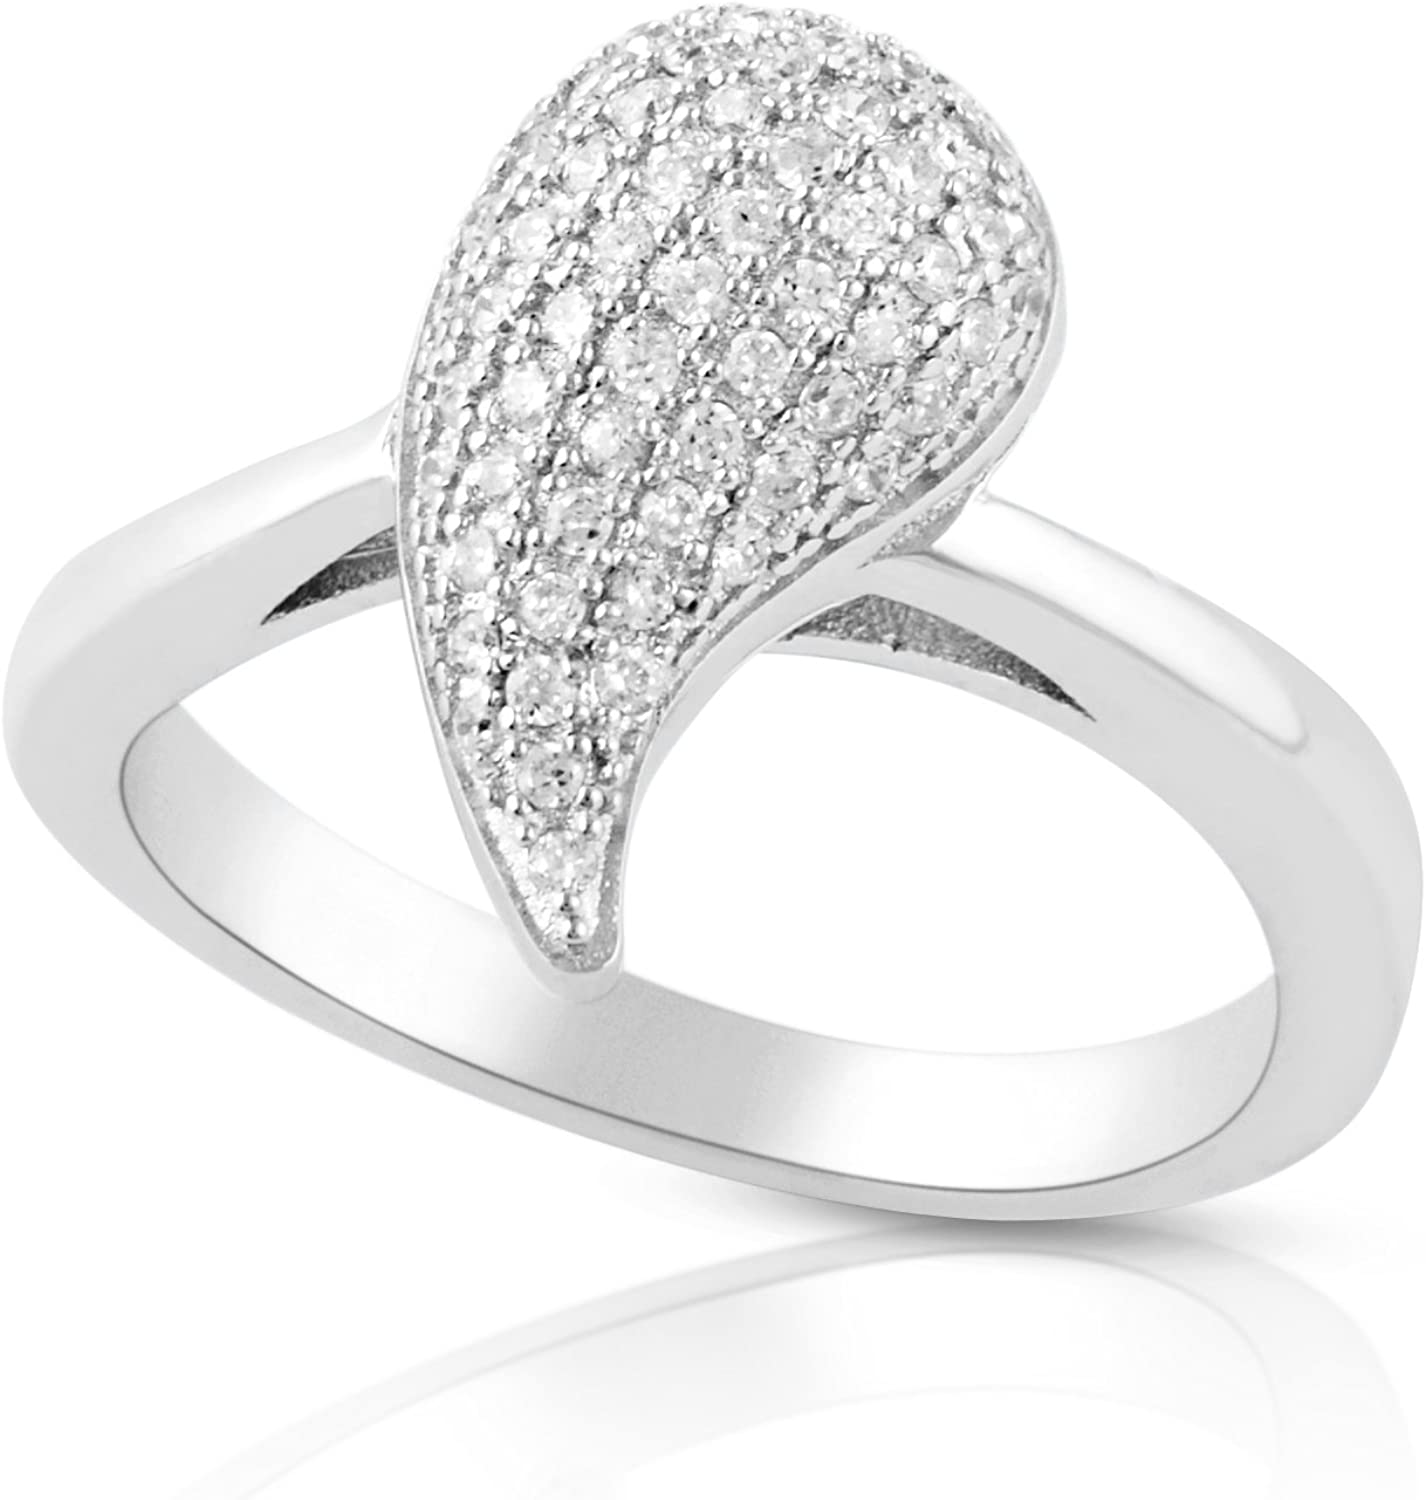 Sterling Silver Cz Swish Ring Size 5-9